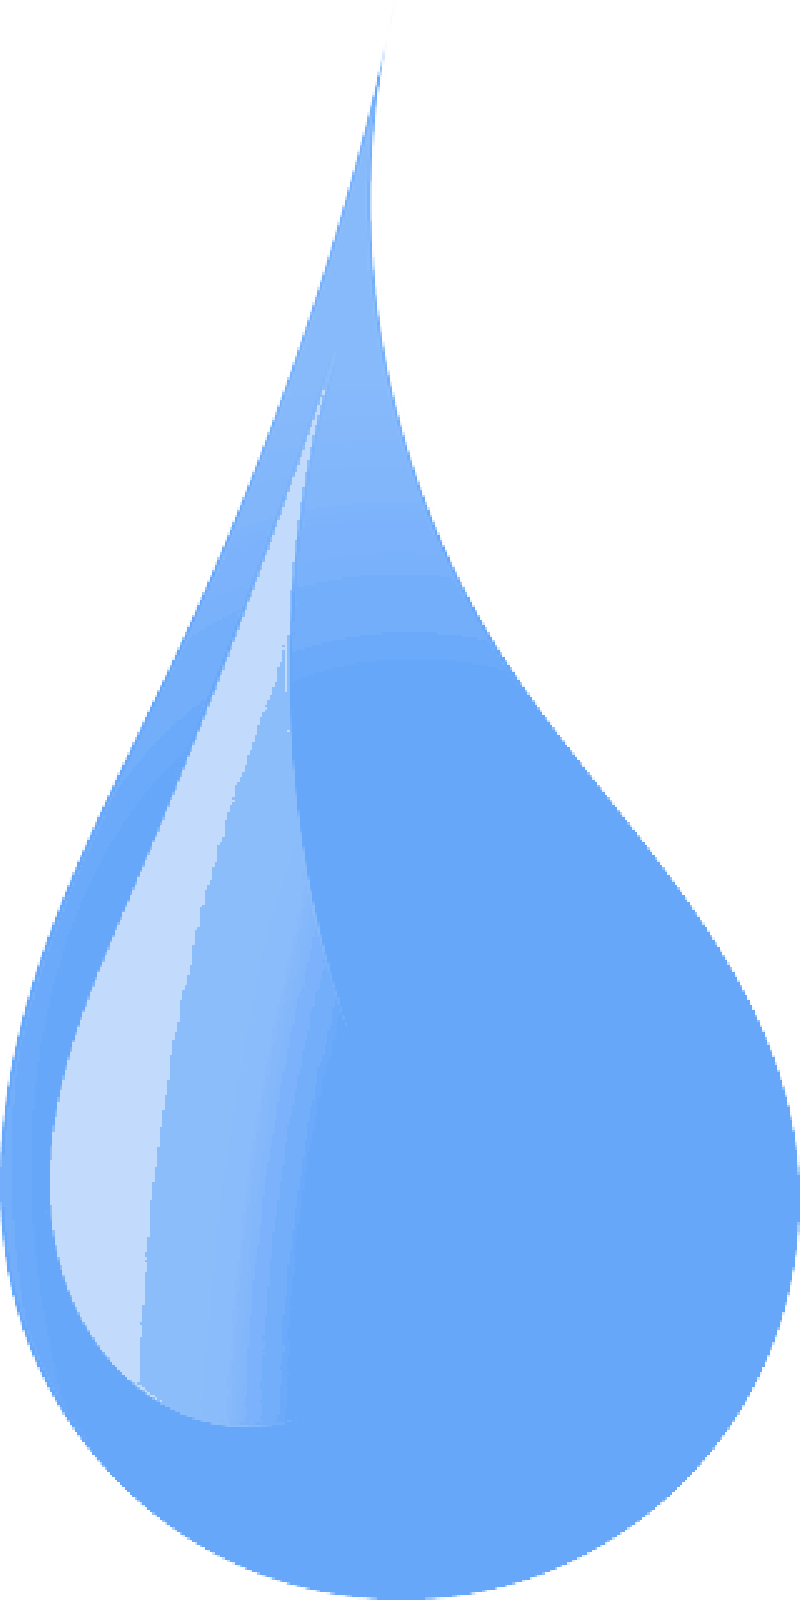 800x1600 Drop, Water, Rain, Tear, Teardrop, Liquid, Raindrop